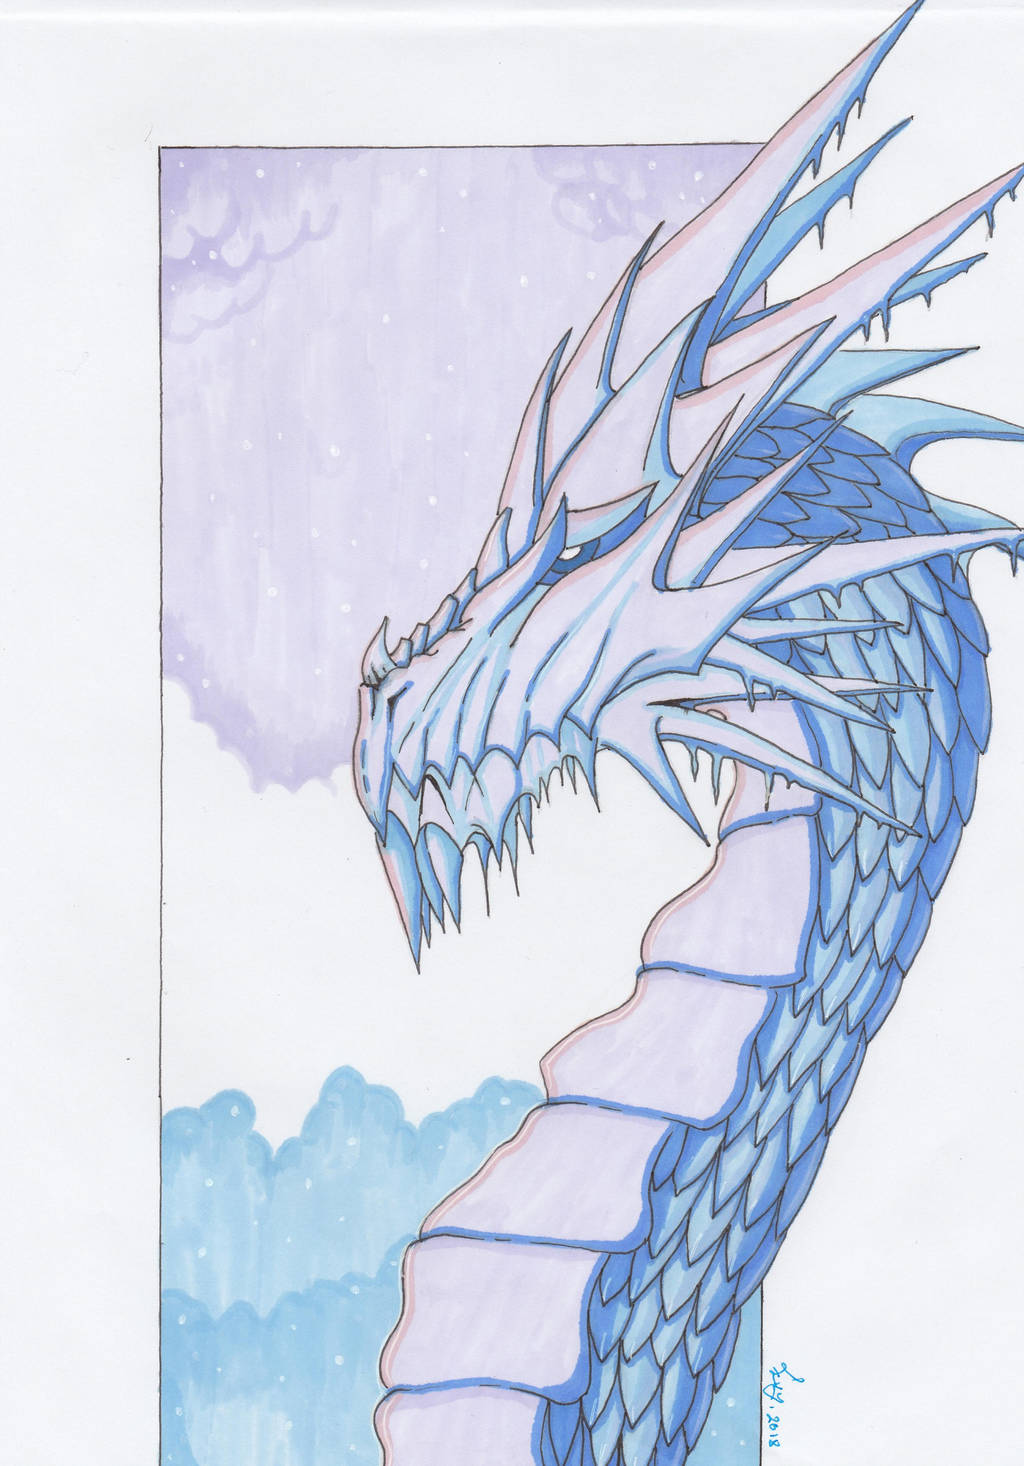 Ice dragon by getupp